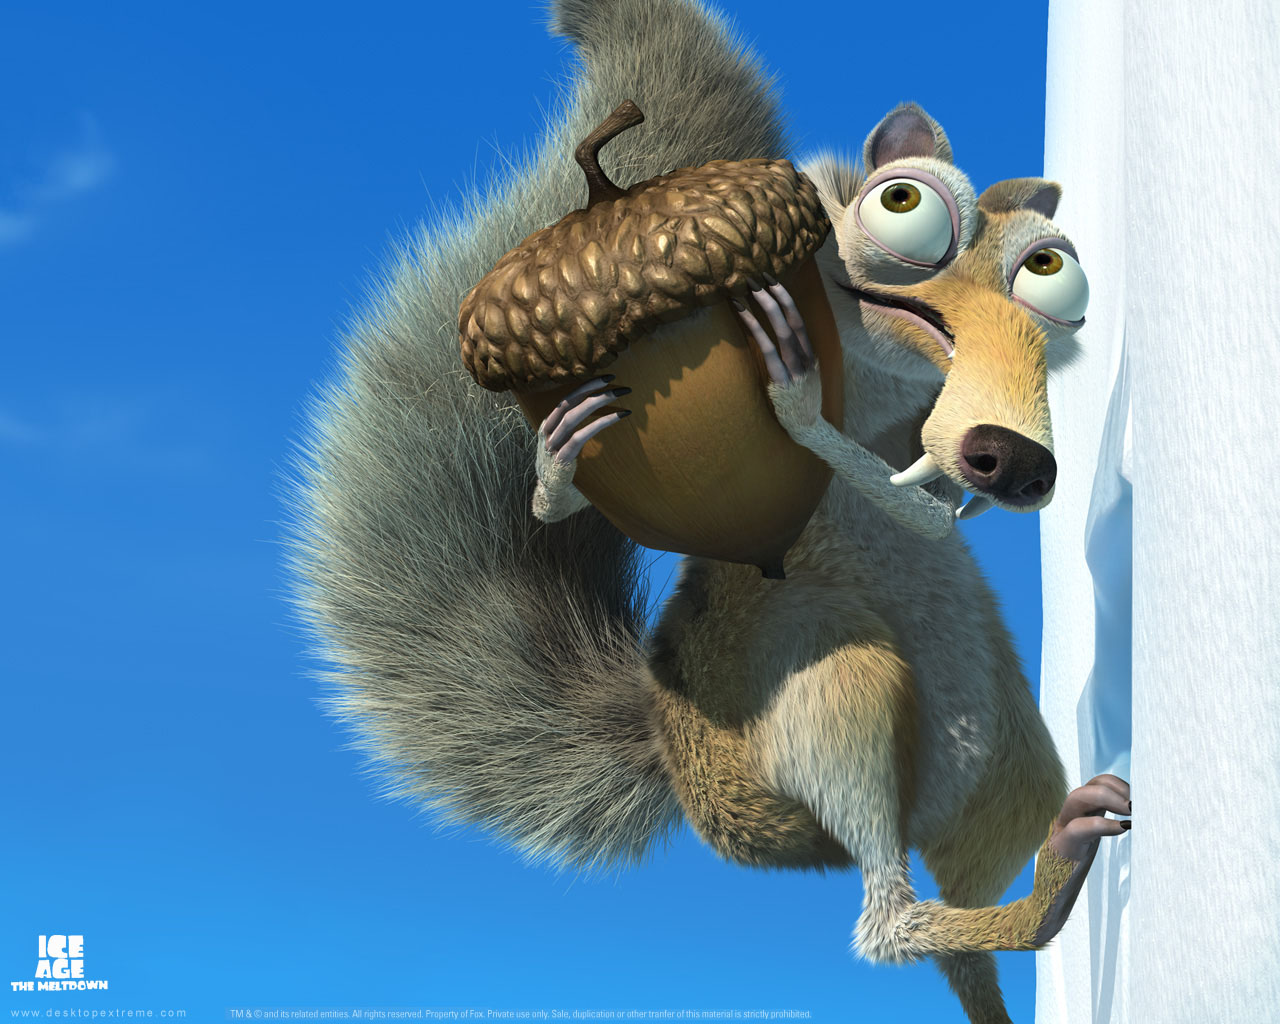 Scrat carrying his acorn in Ice Age: The Meltdown disneyjuniorblog.blogspot.com